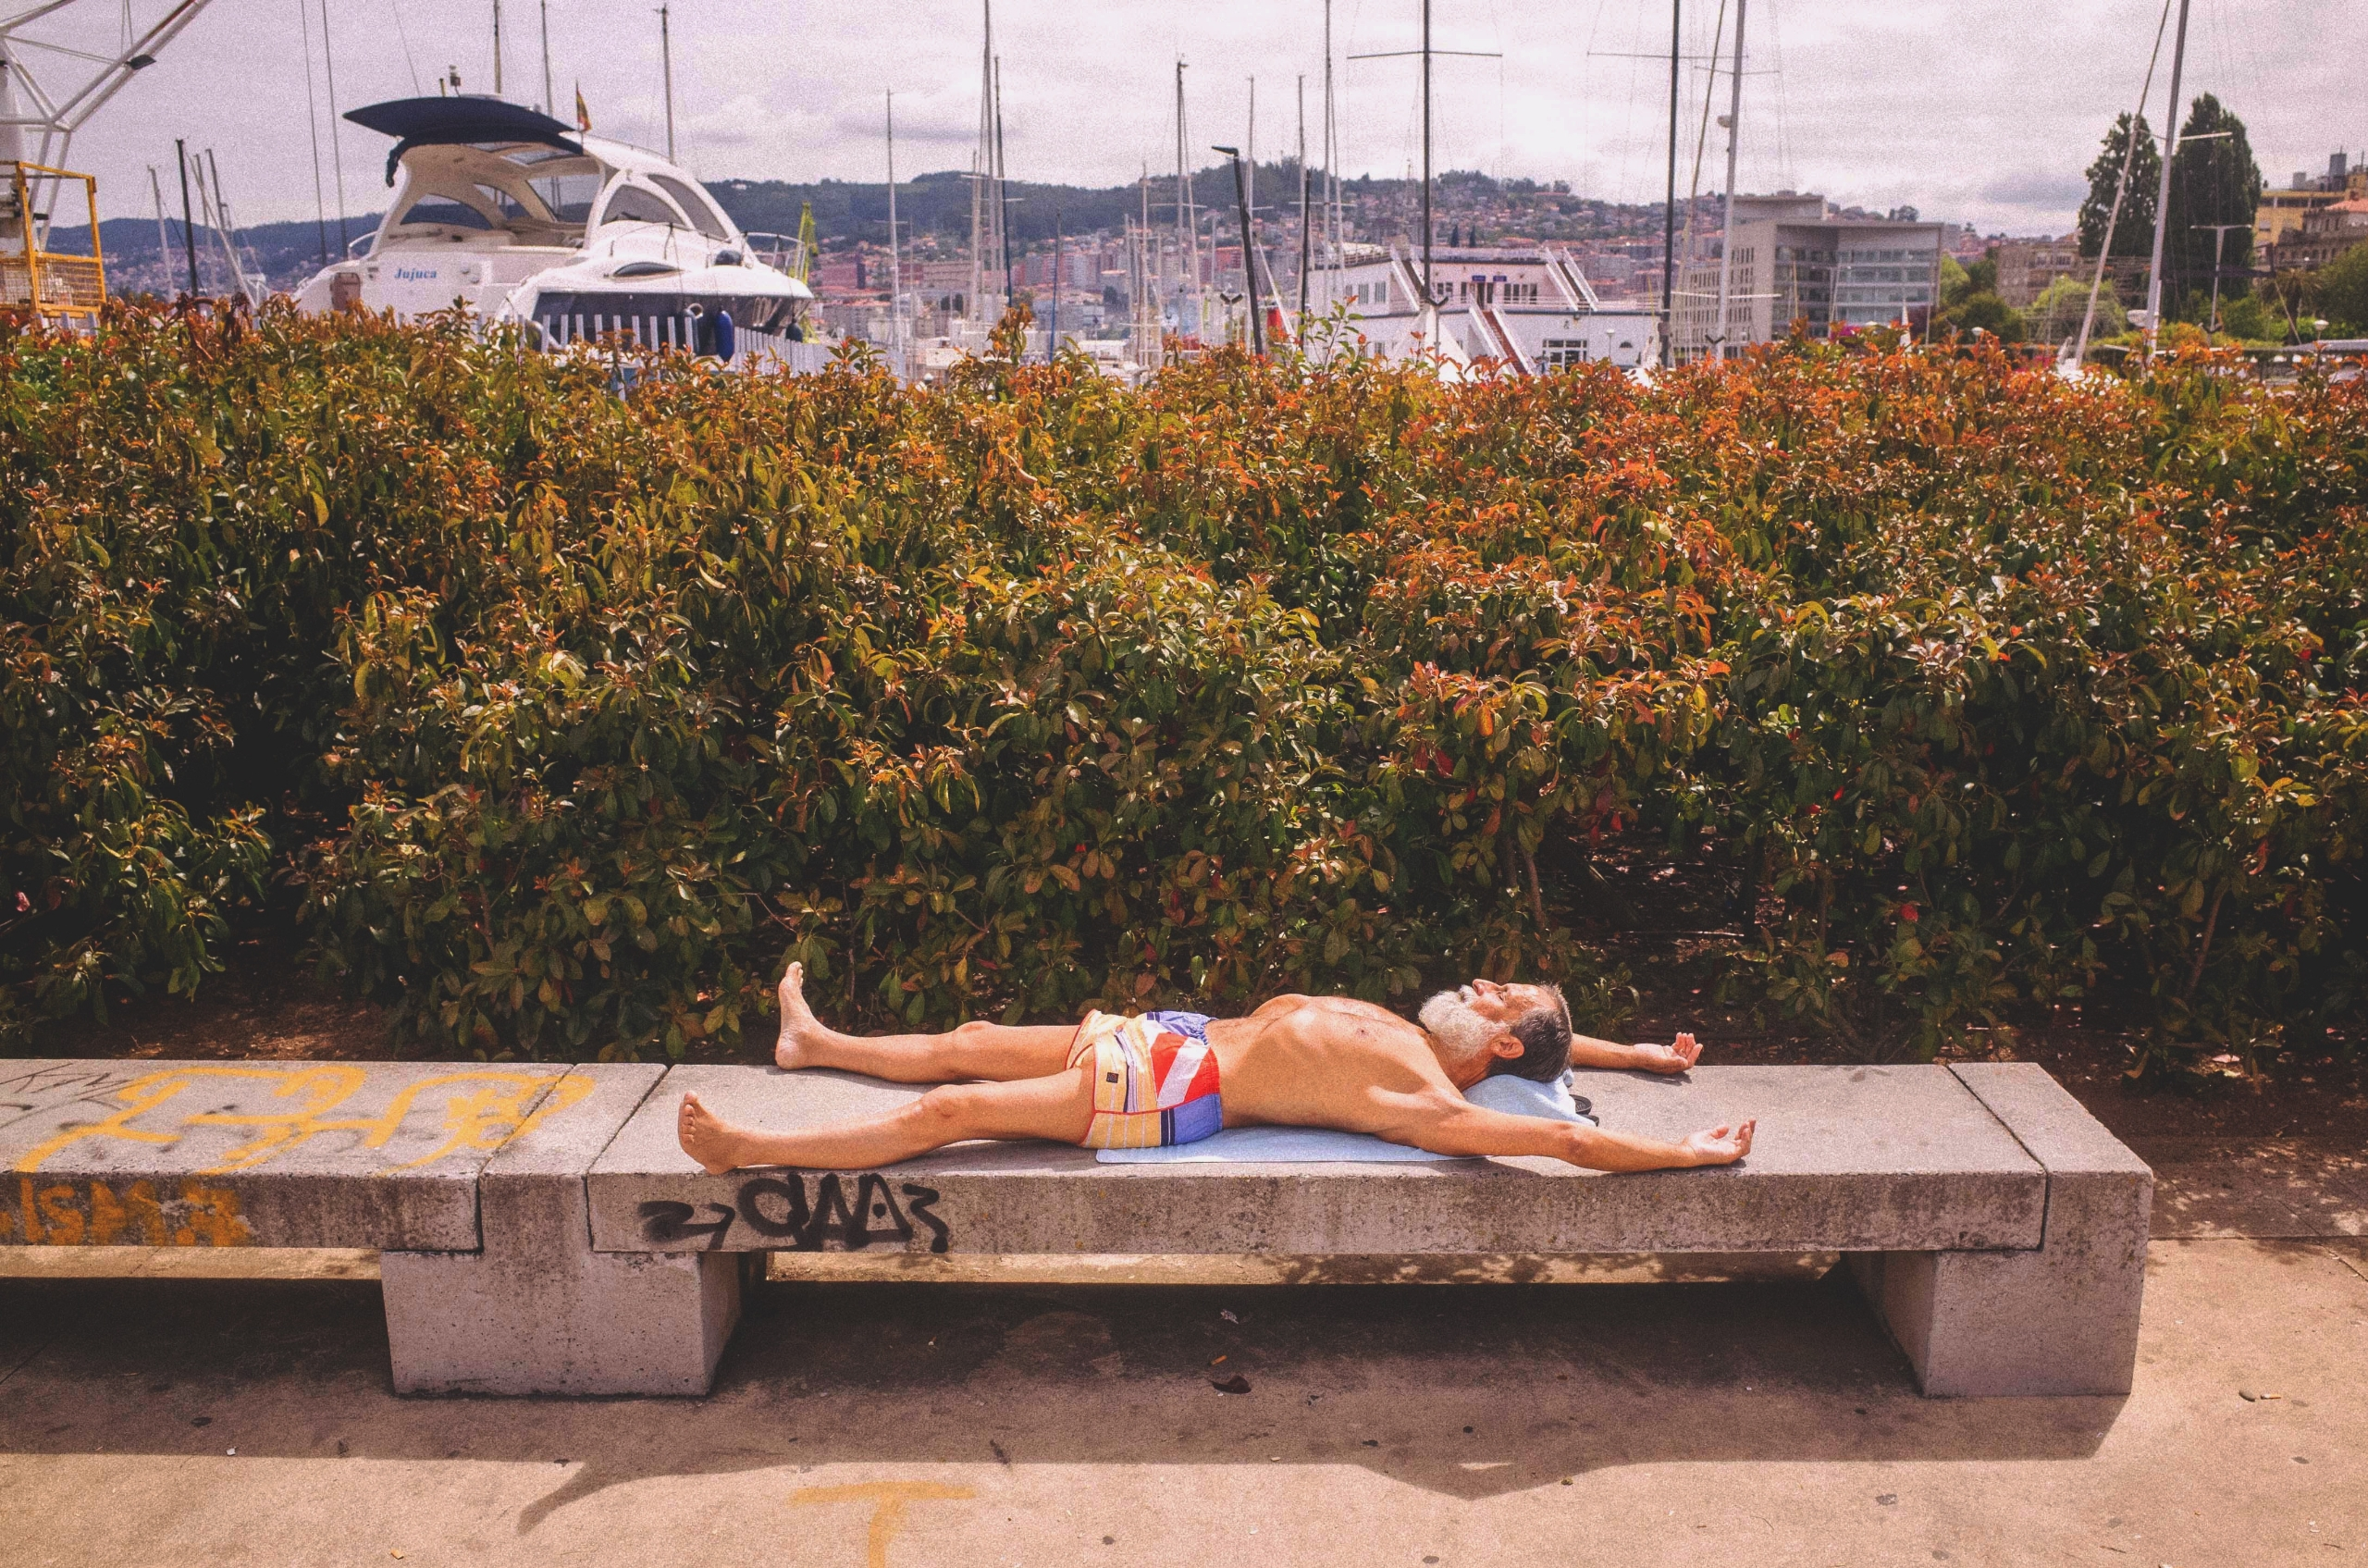 man sunbathing pier - photography - escot | ello